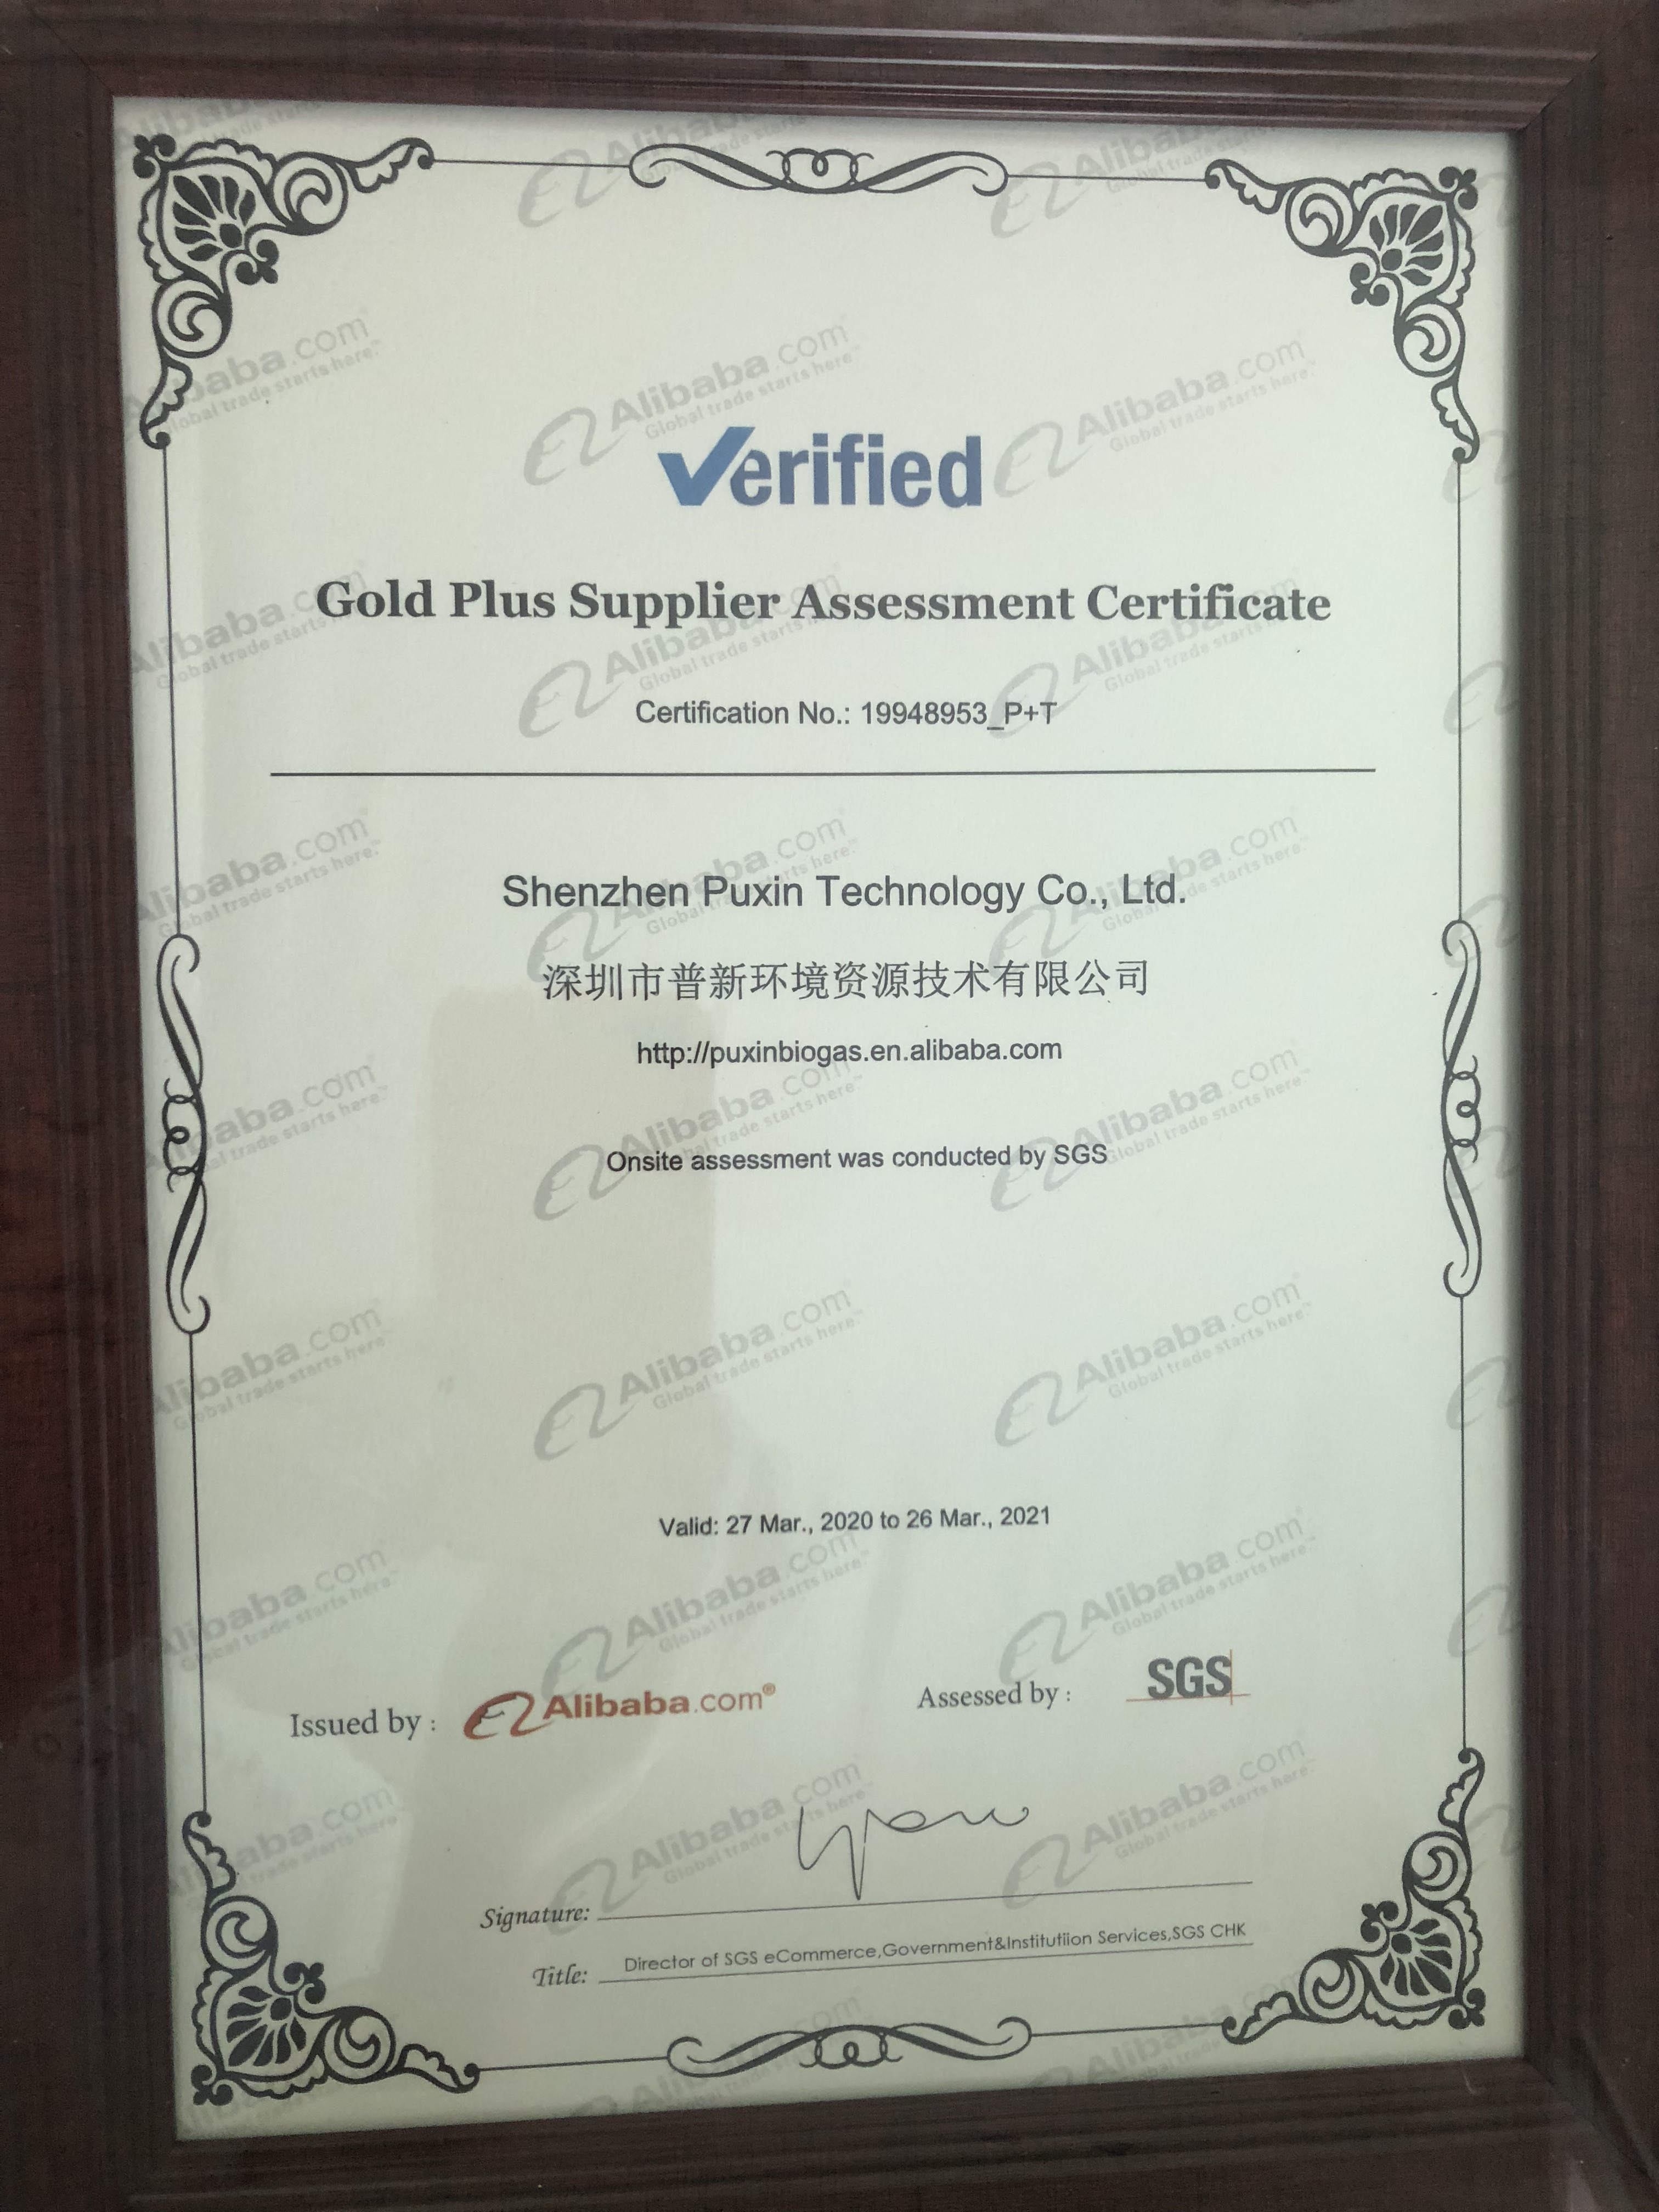 Gold Plus Supplier